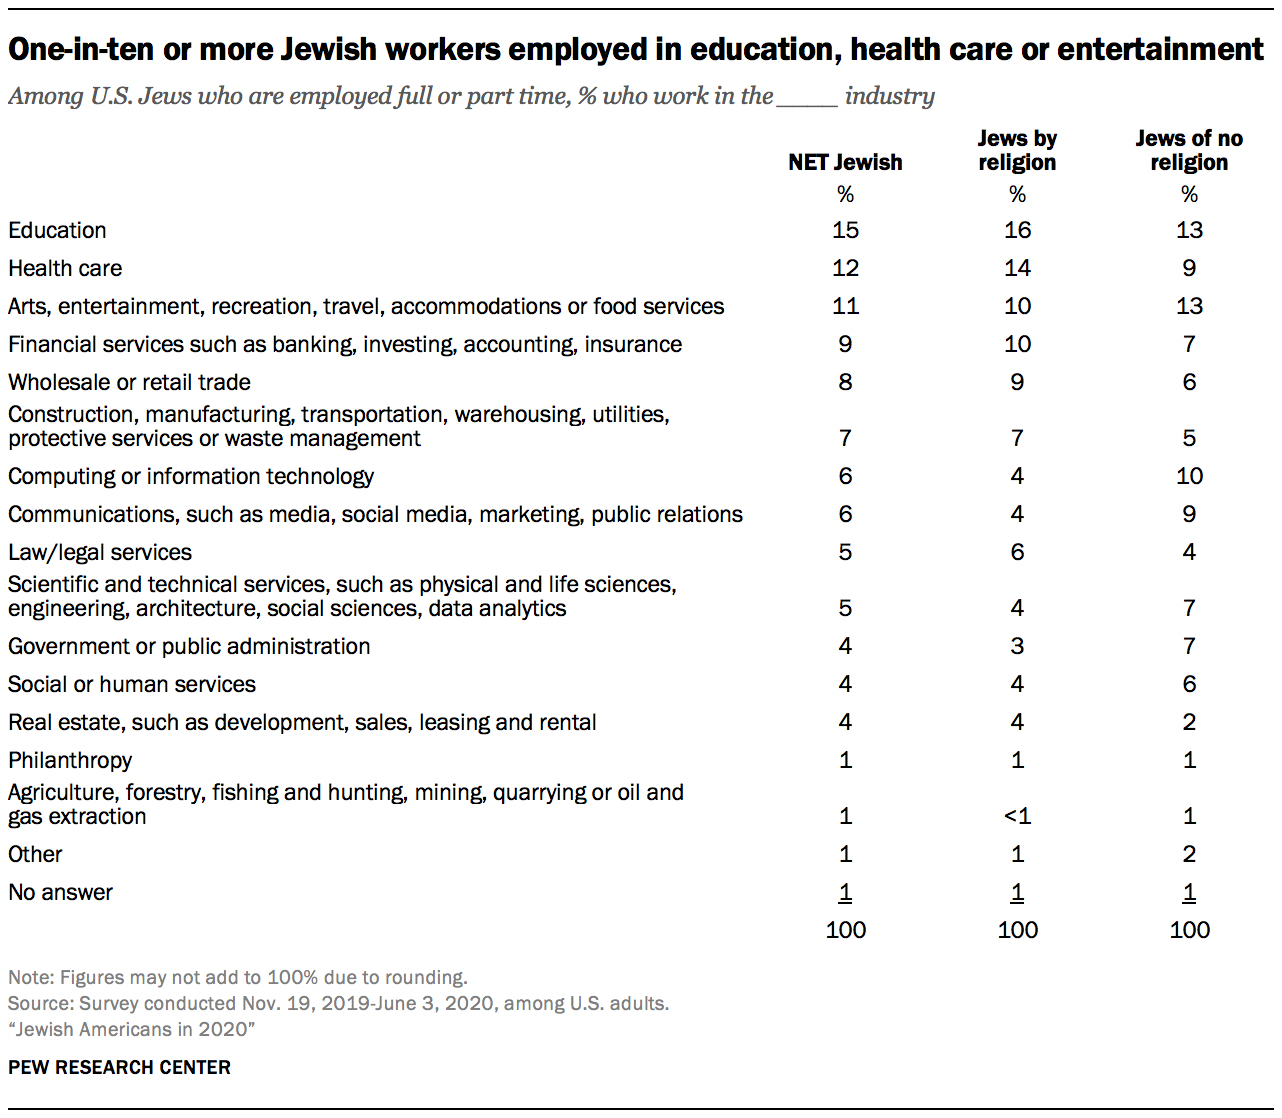 One-in-ten or more Jewish workers employed in education, health care or entertainment